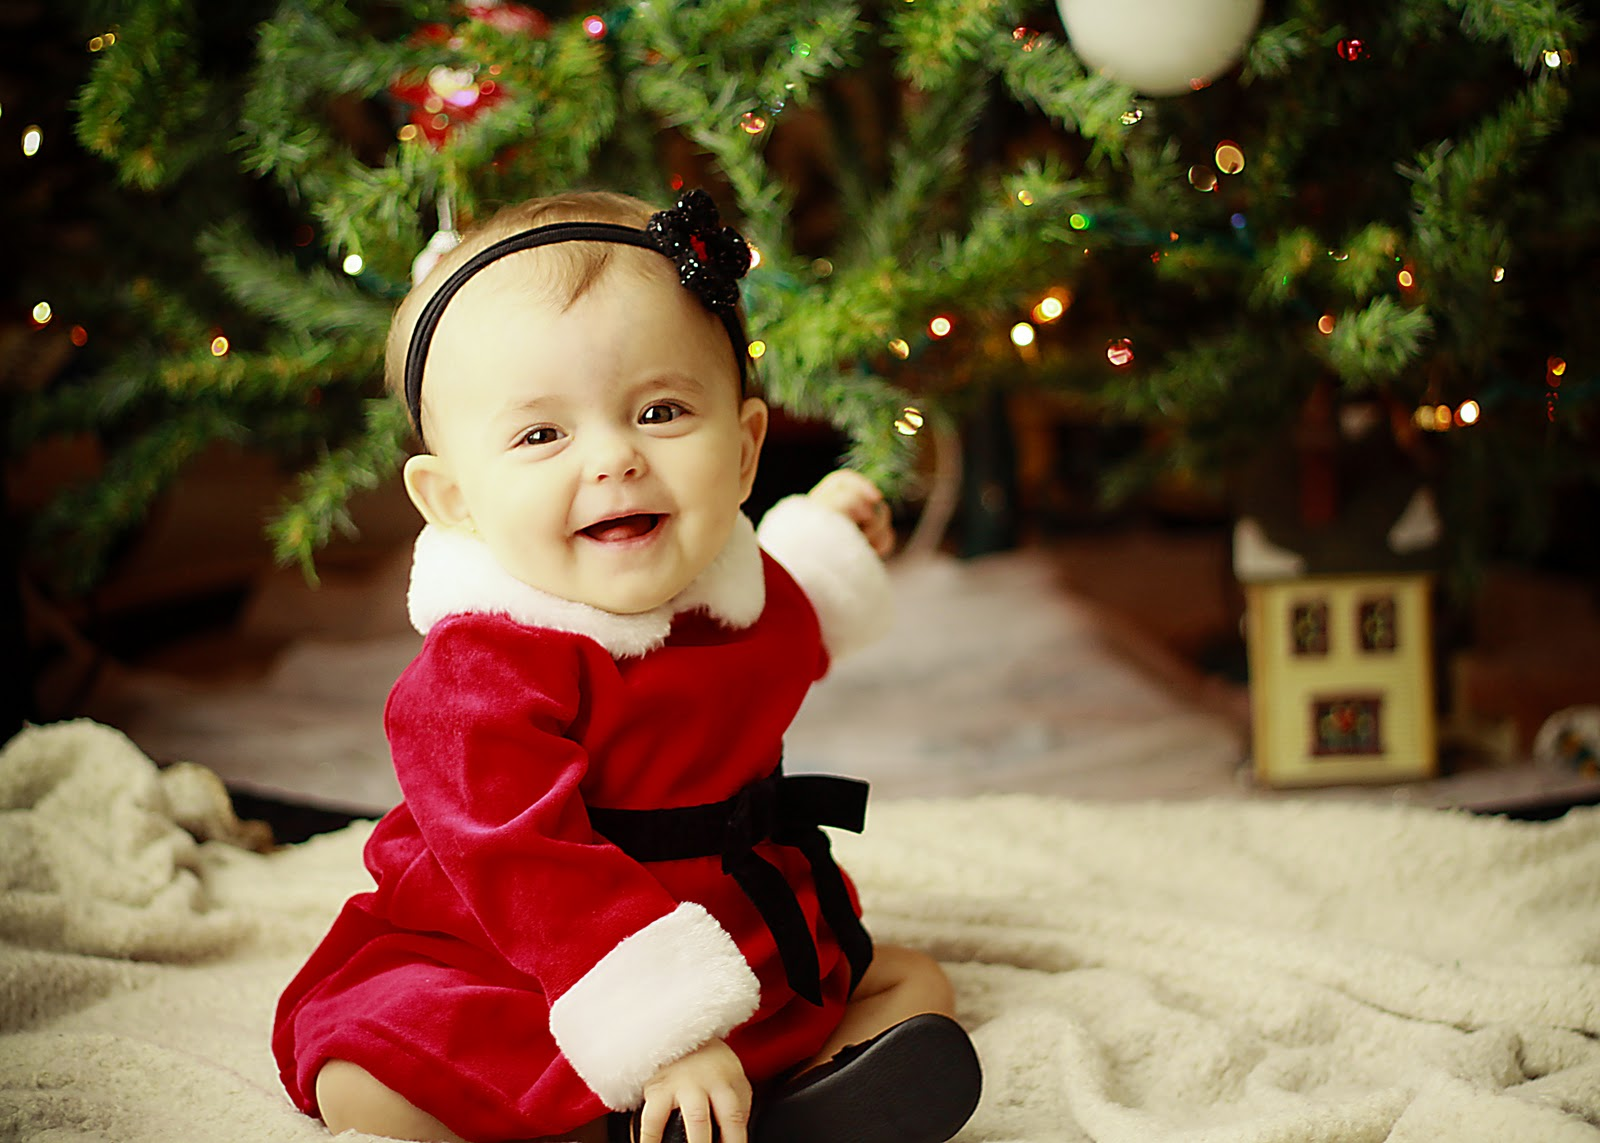 Cute Boy Wallpapers For Desktop Meet The Cutest Christmas Babies Who Can Be On Your